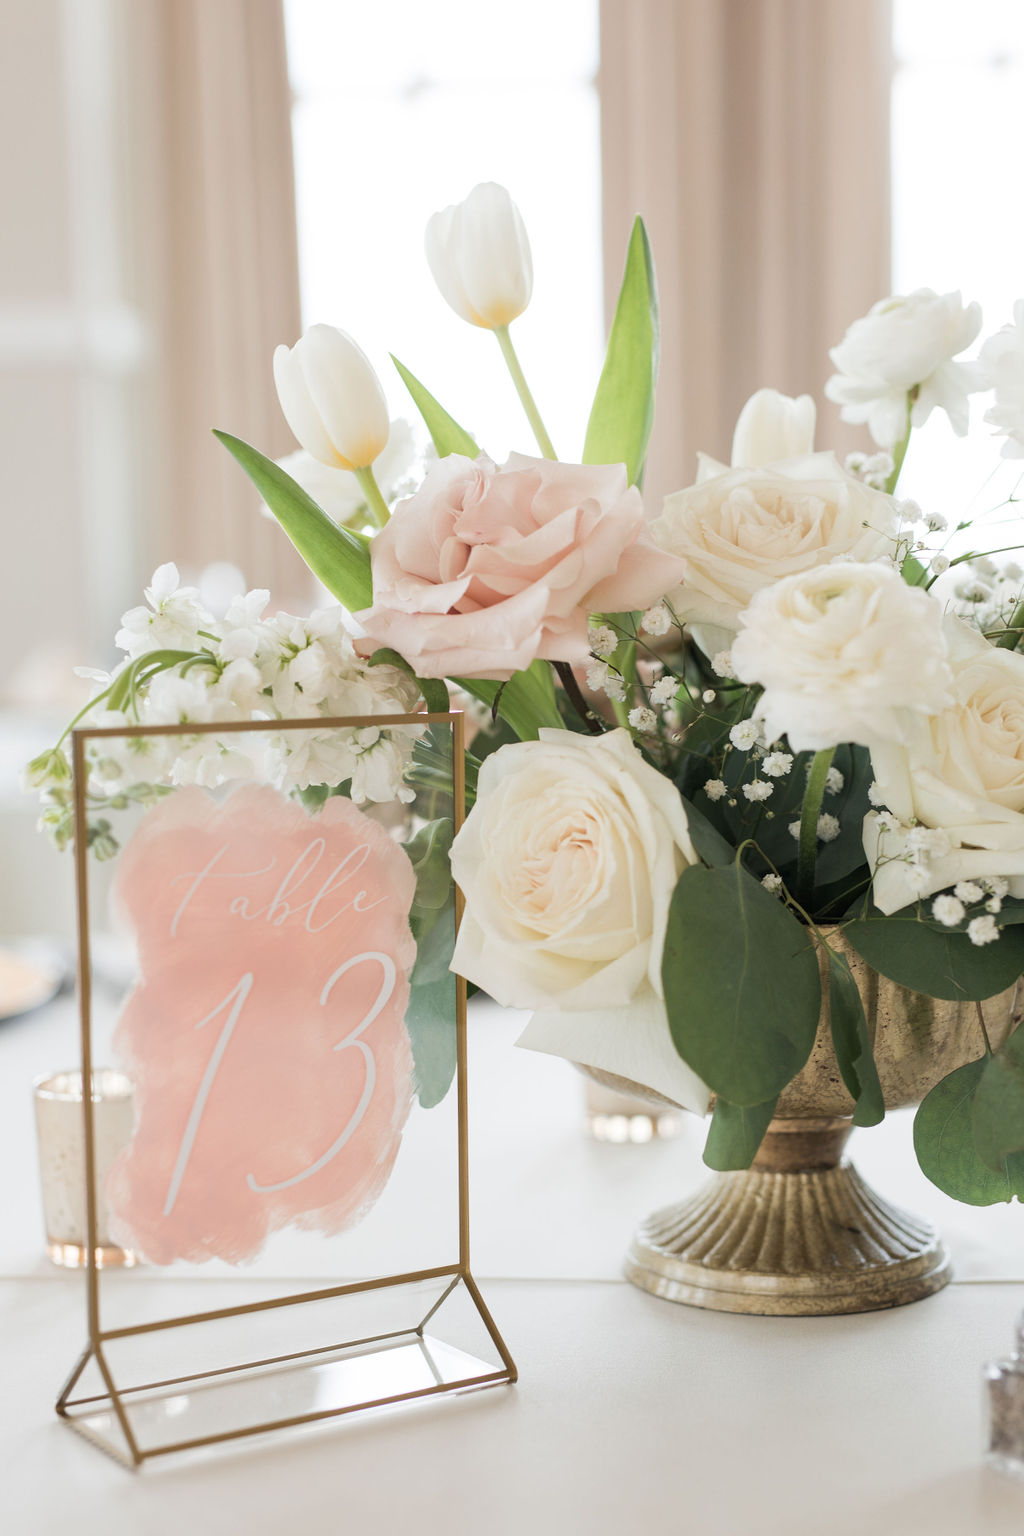 Pink wedding table numbers and centerpieces: Dusty Blue and Blush Wedding at The Room on Main featured on Alexa Kay Events!